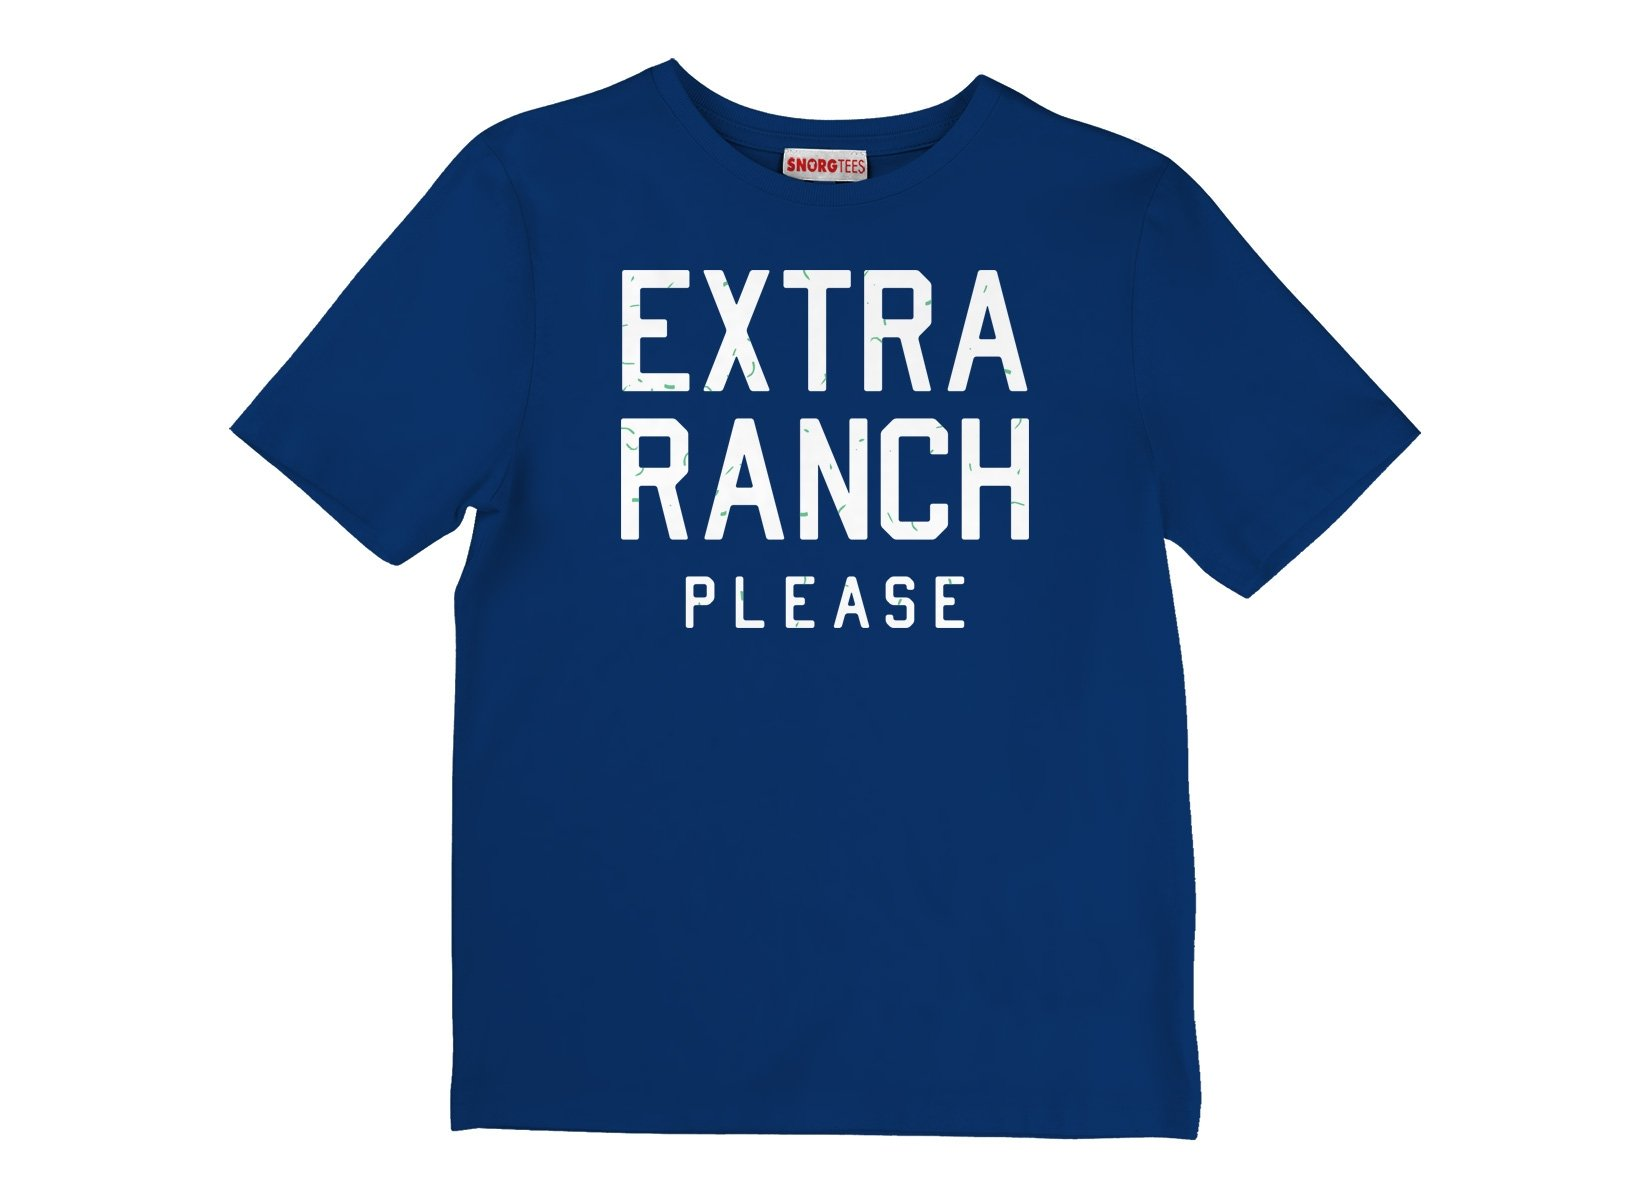 Extra Ranch Please on Kids T-Shirt